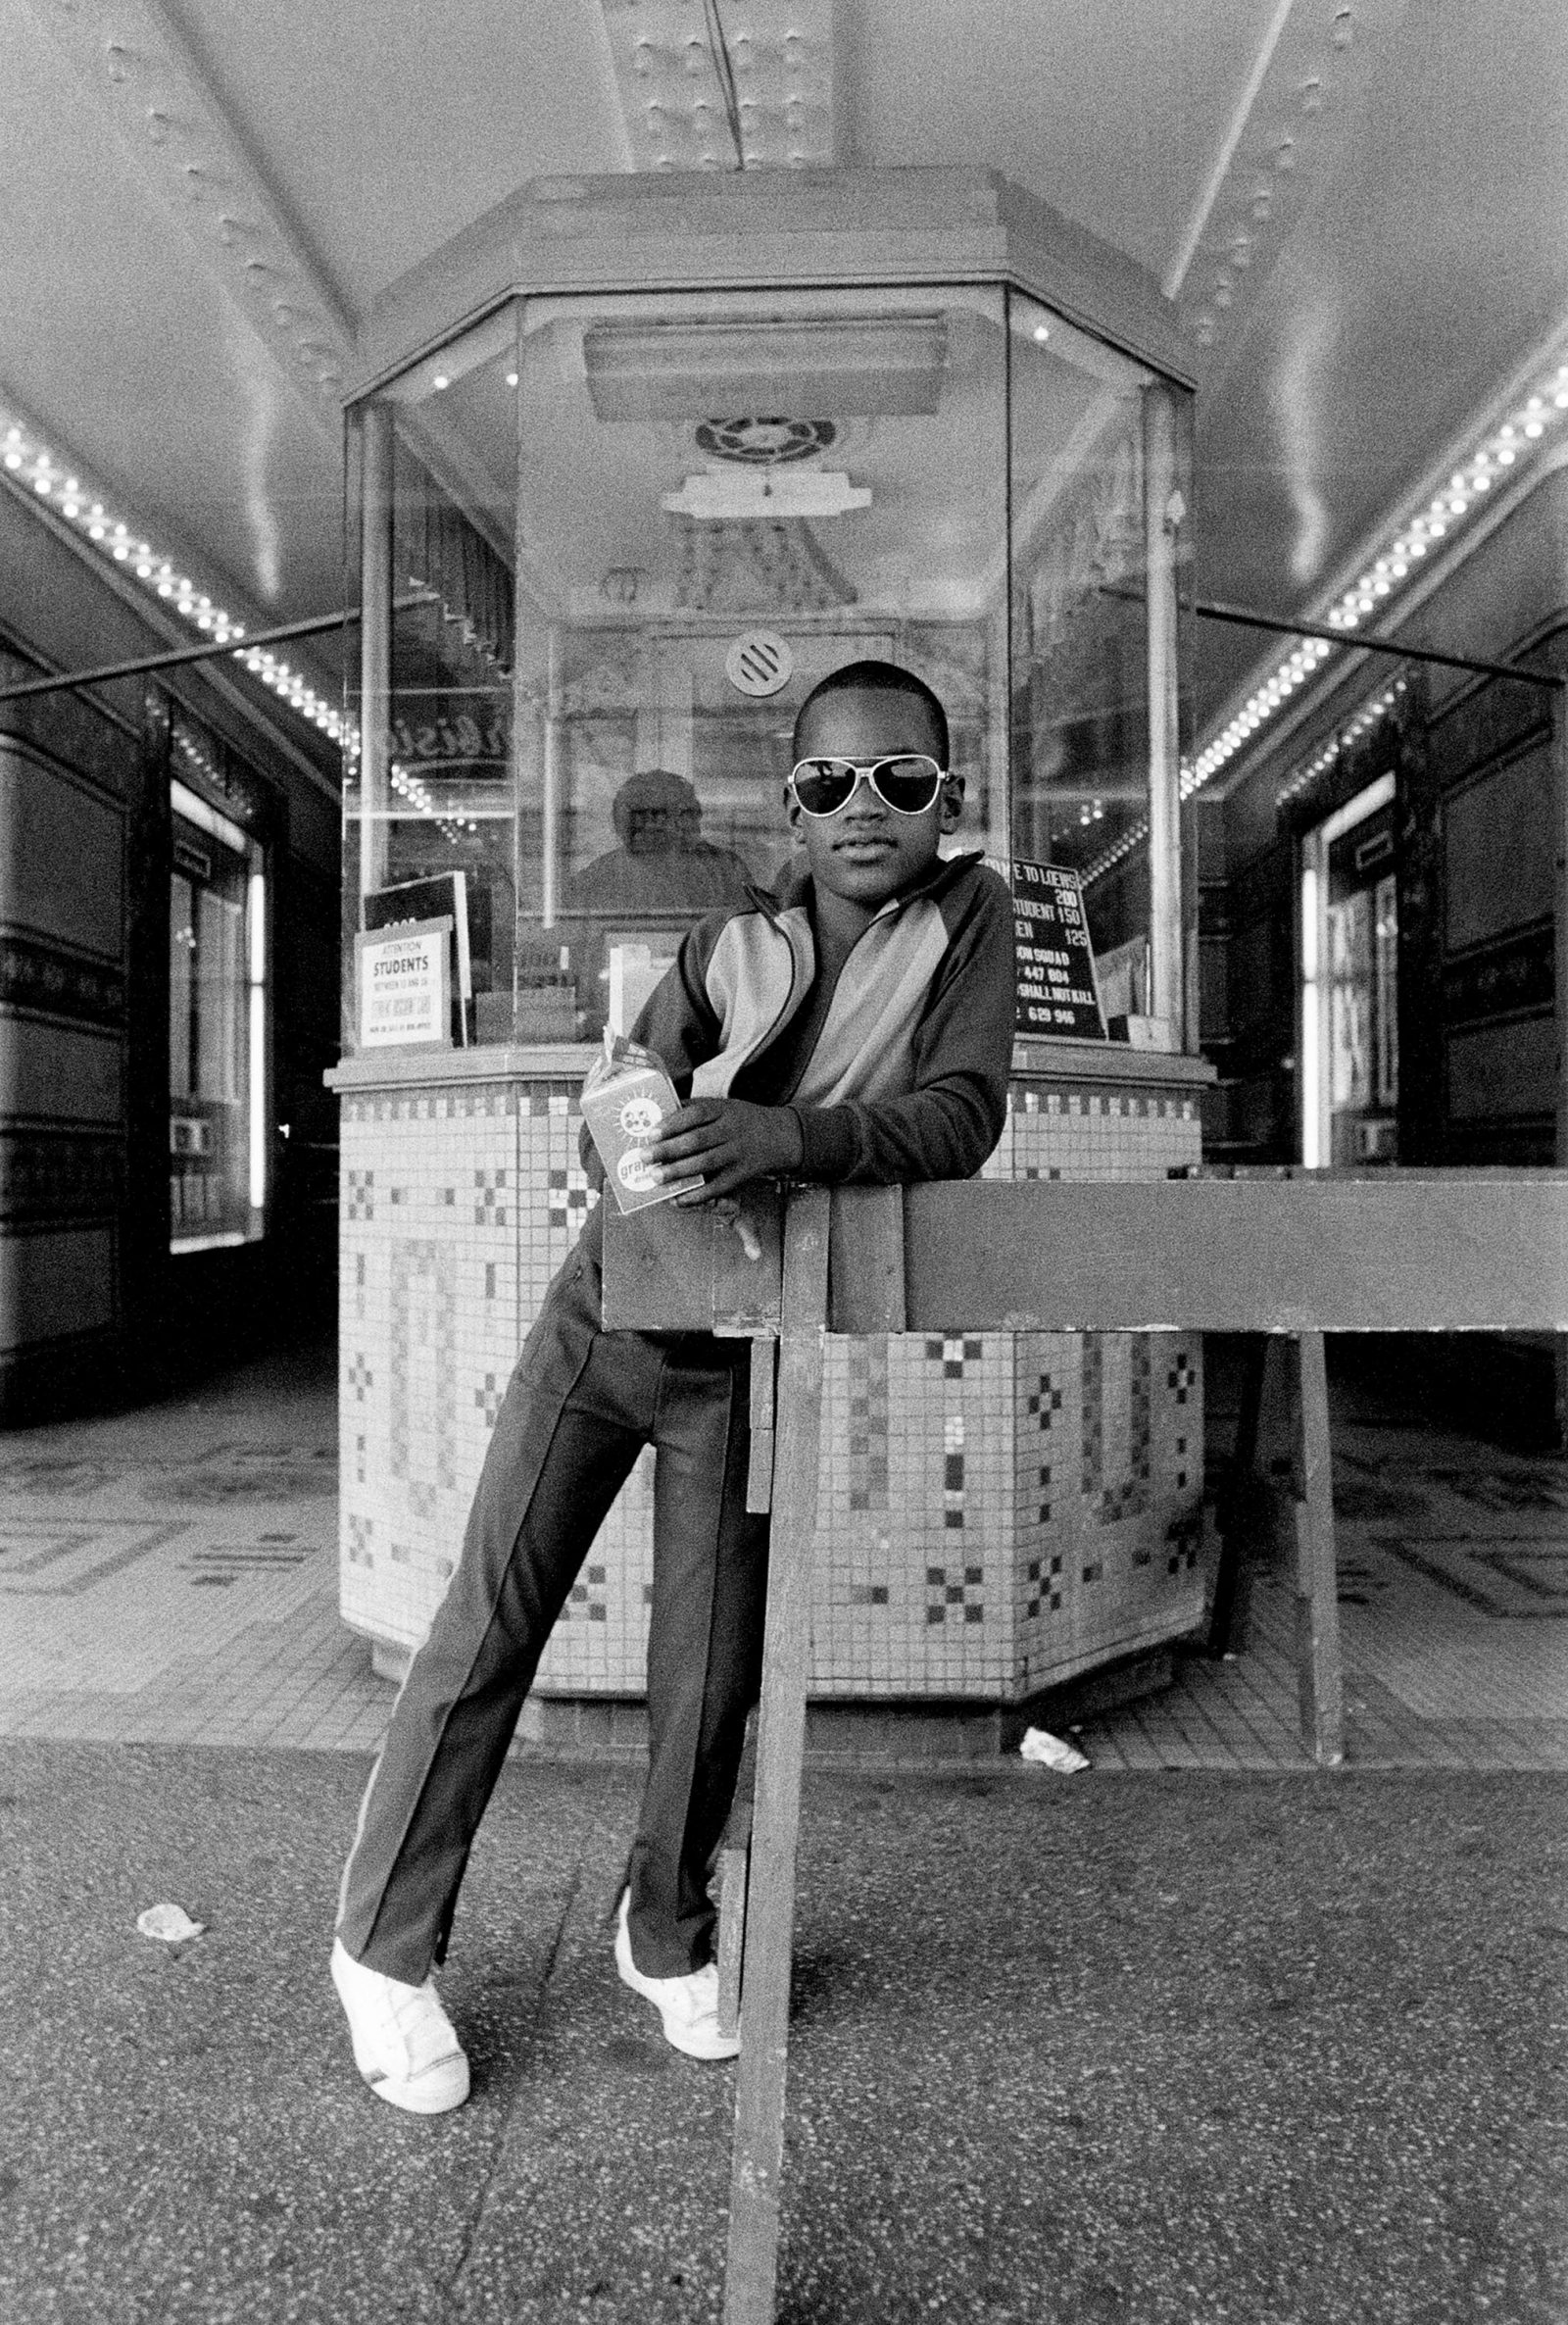 A Boy in Front of the Loews 125th Street Movie Theater, Harlem NY (1976)